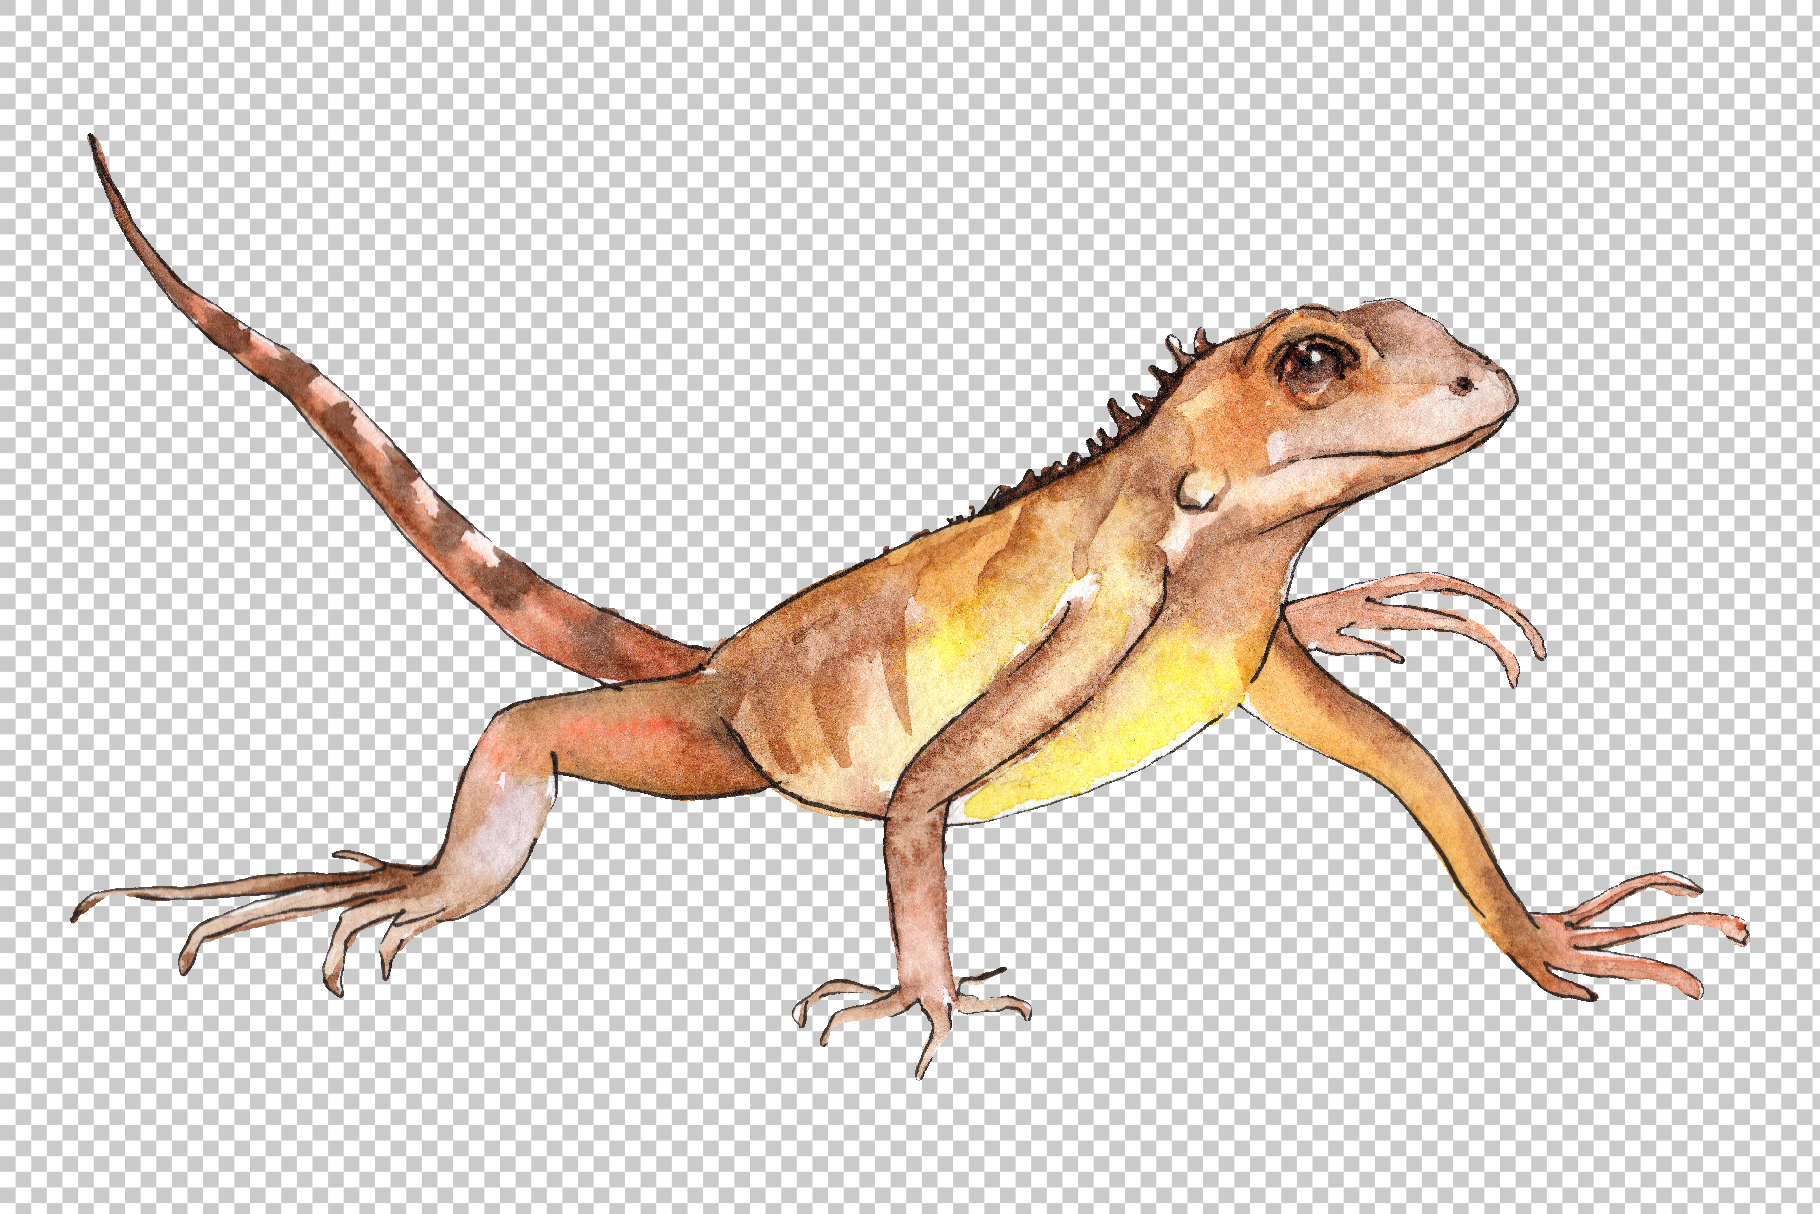 Iguana-1 Watercolor png example image 3